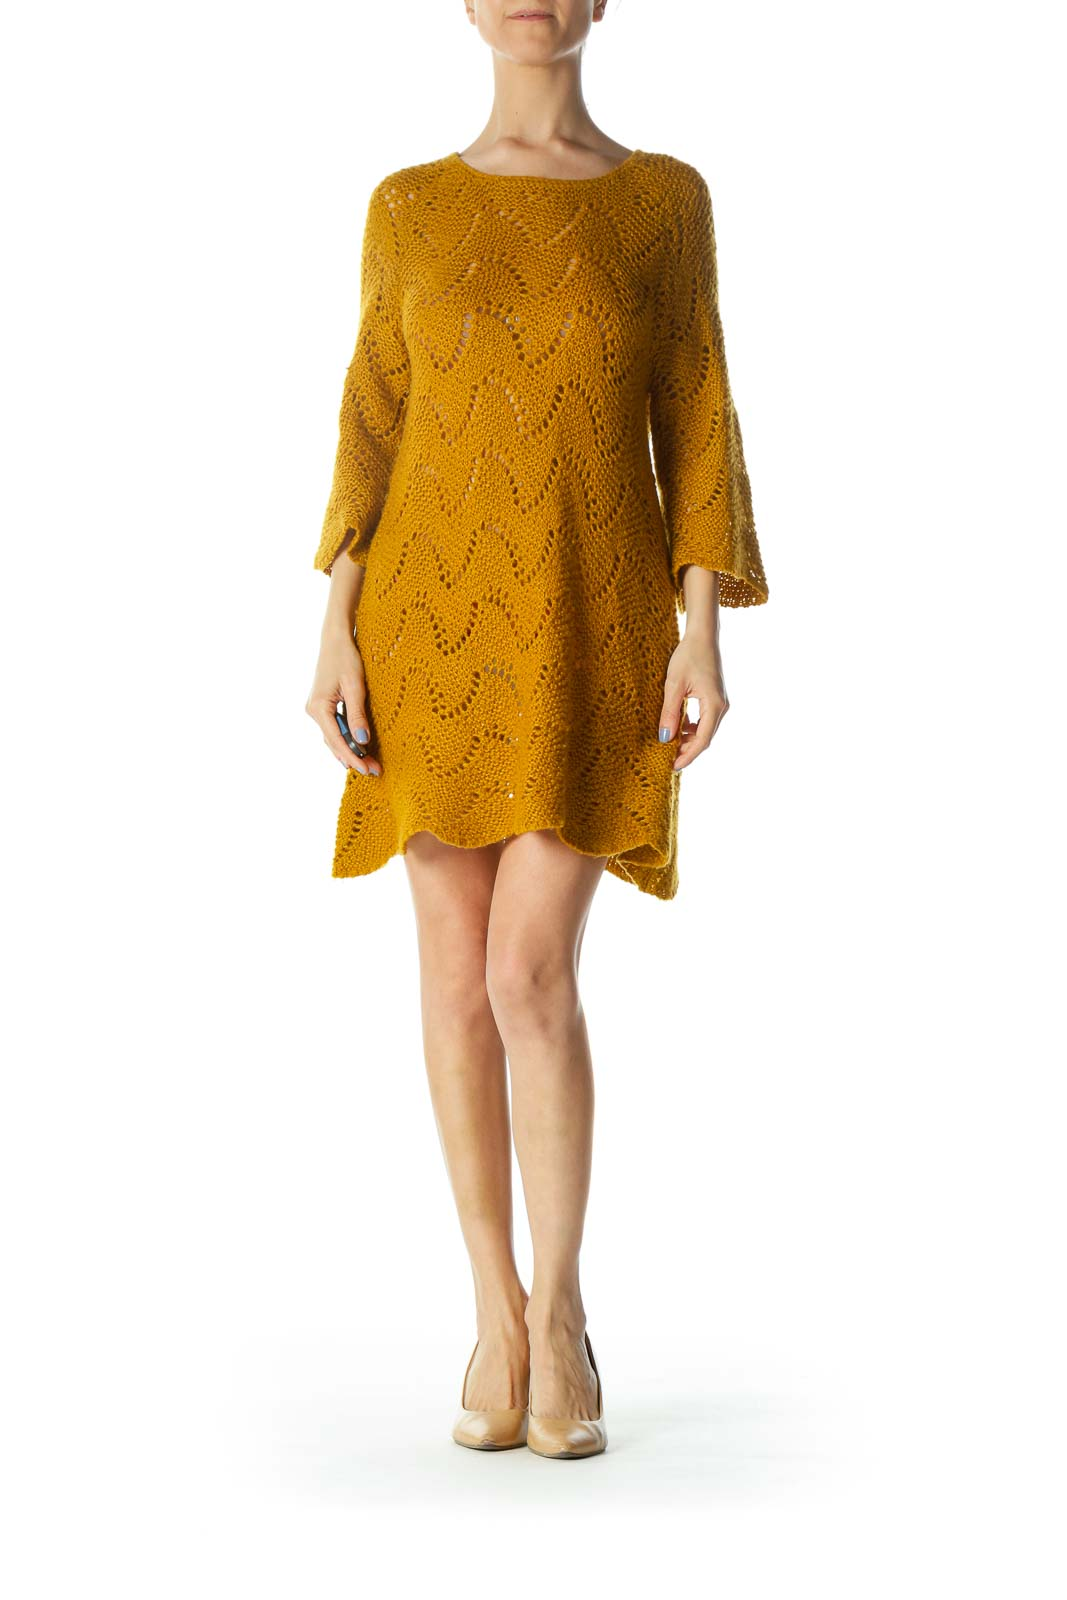 Mustard-Yellow Round-Neck Long-Sleeve Knit See-Through Dress